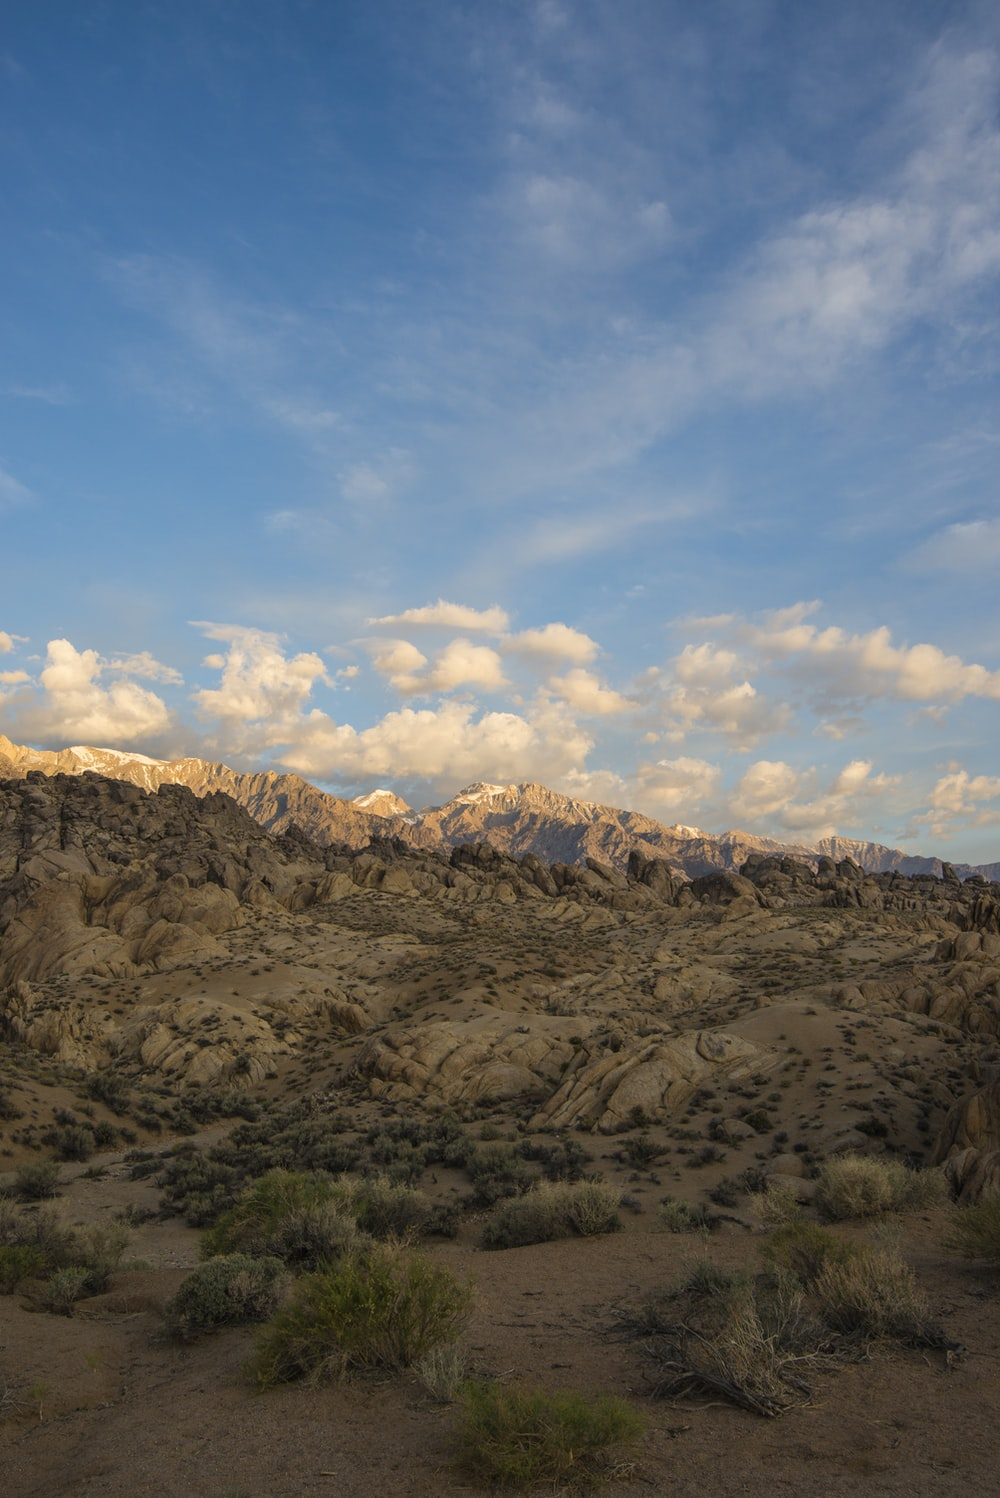 brown mountain under blue sky and white clouds during daytime